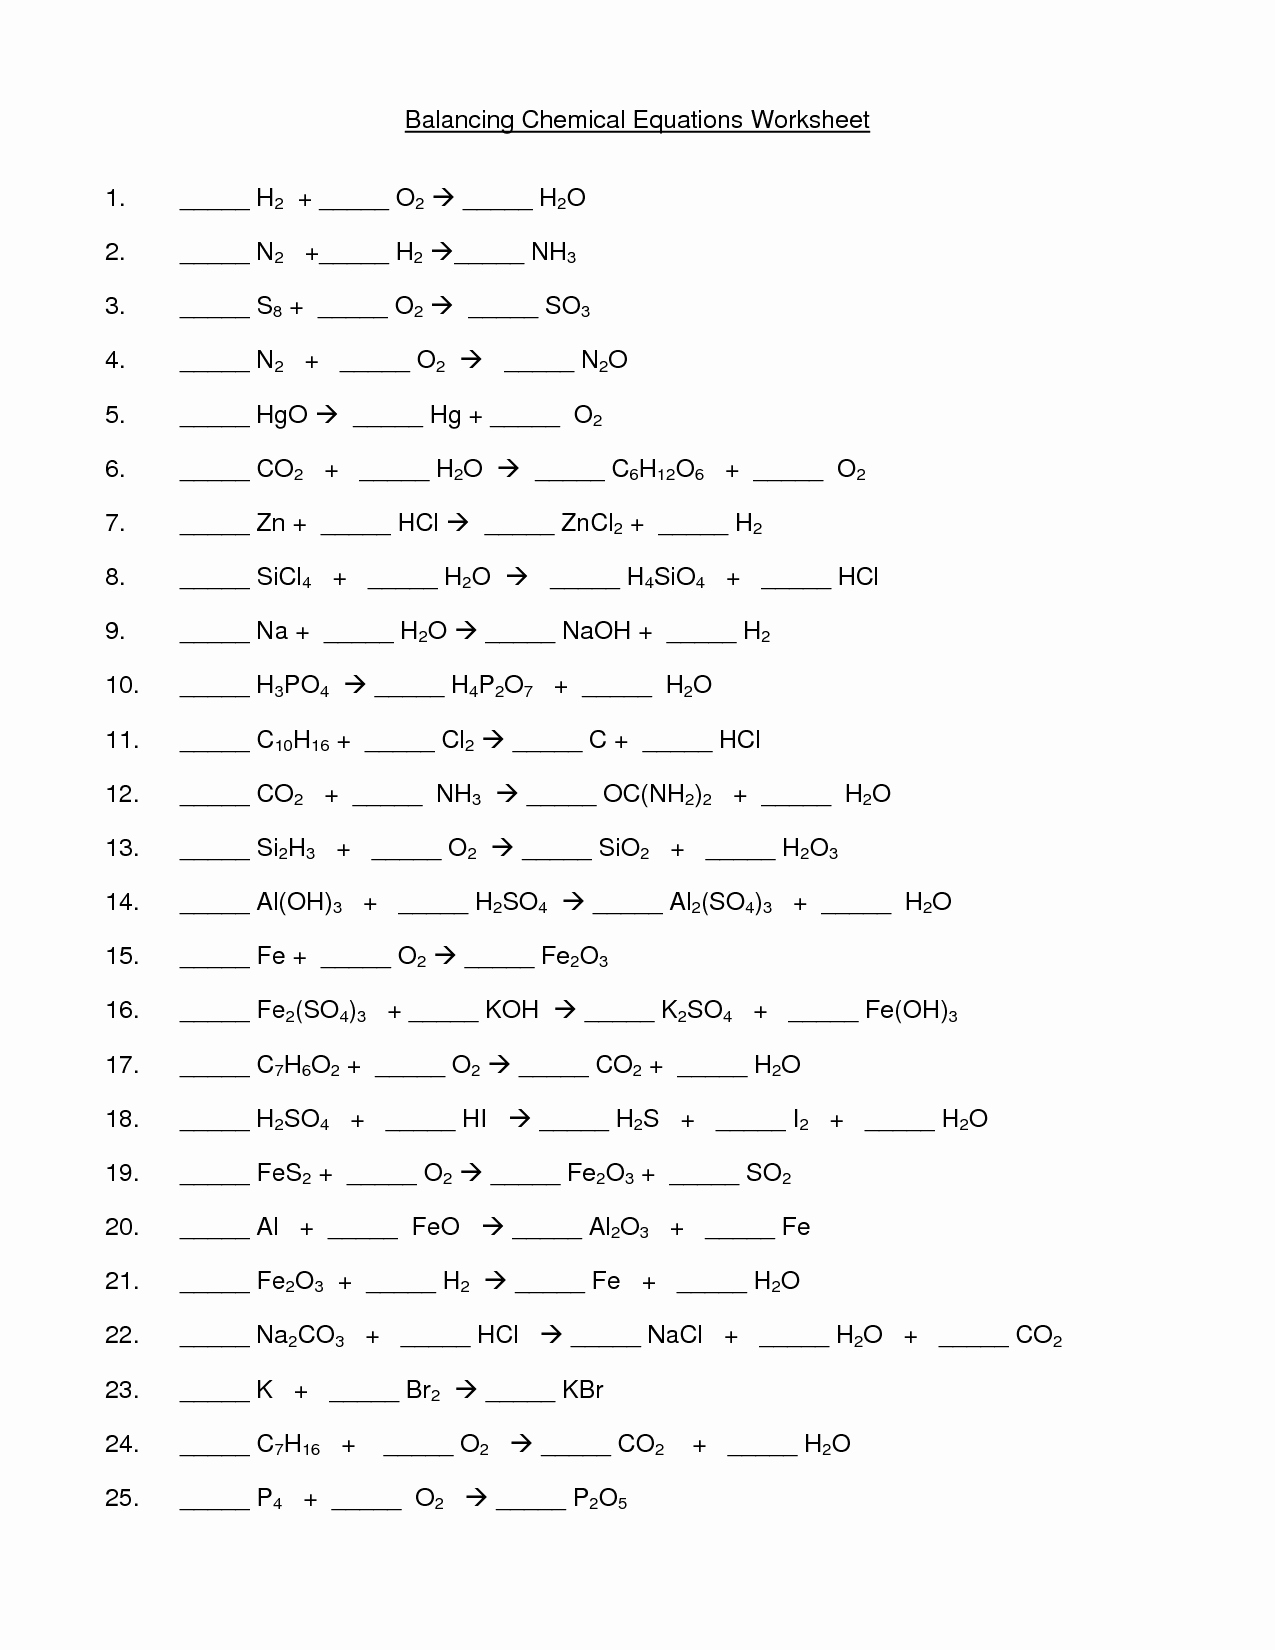 50 Chemical Reactions Worksheet Answers